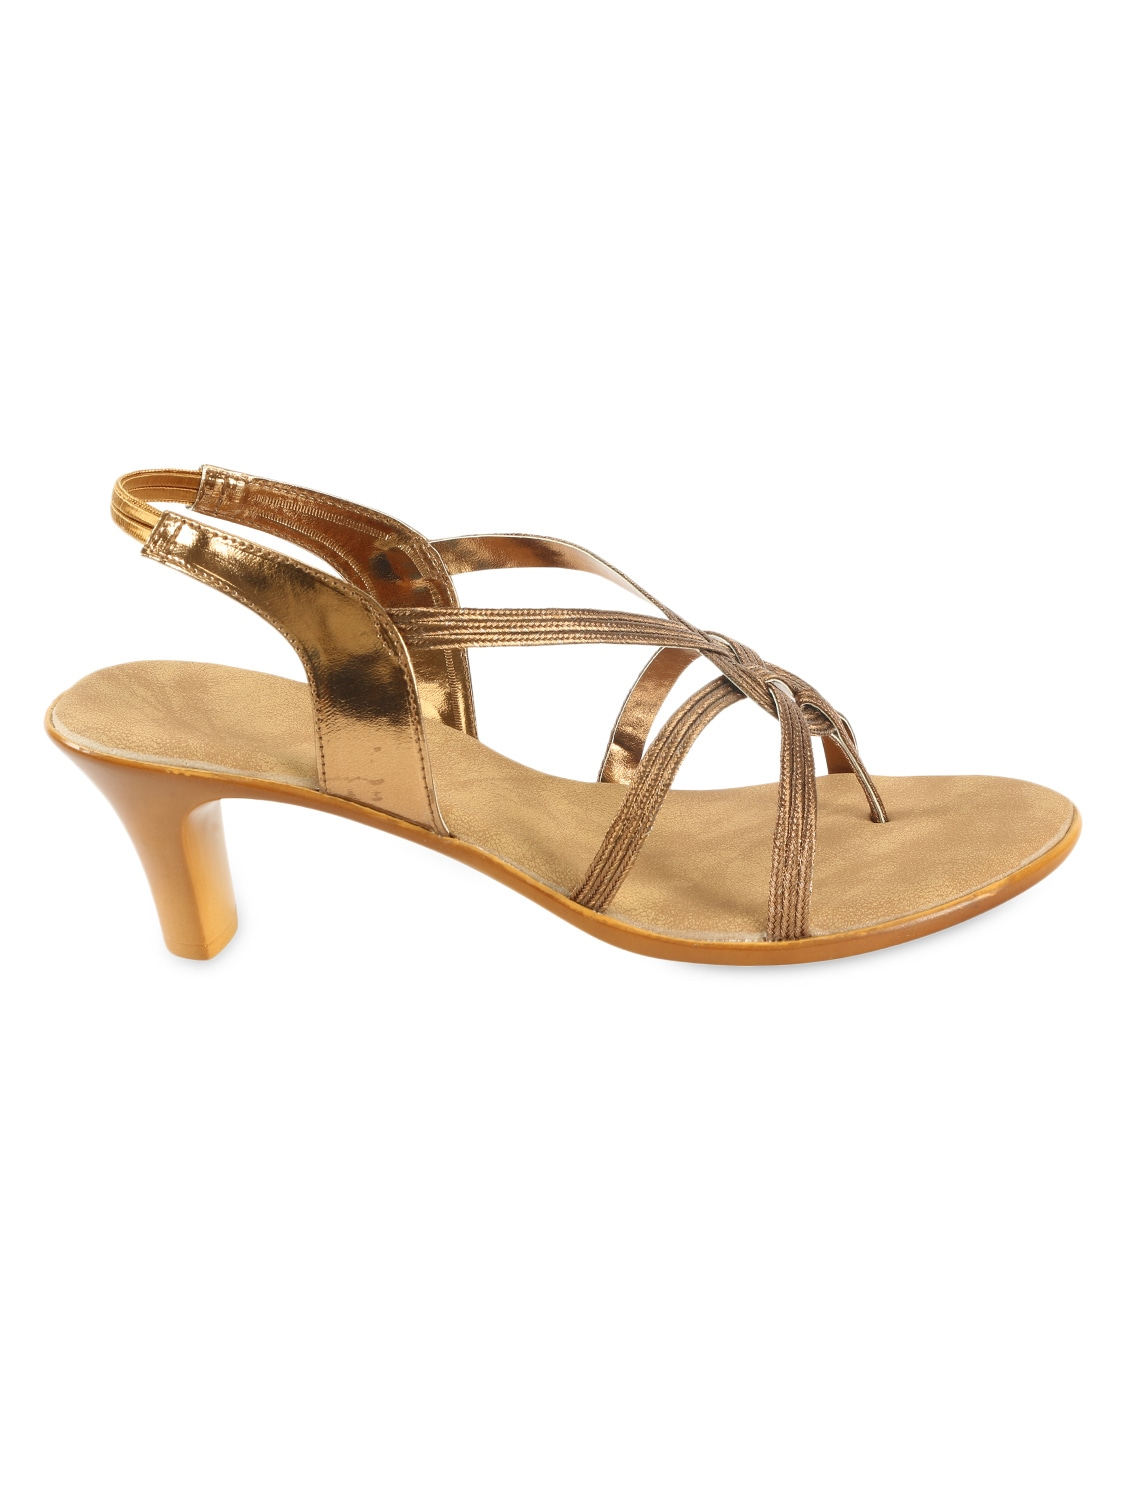 dd8c92b172e Buy Gold Strappy Mid Heel Sandals for Women from Zachho for ₹1199 at 60%  off